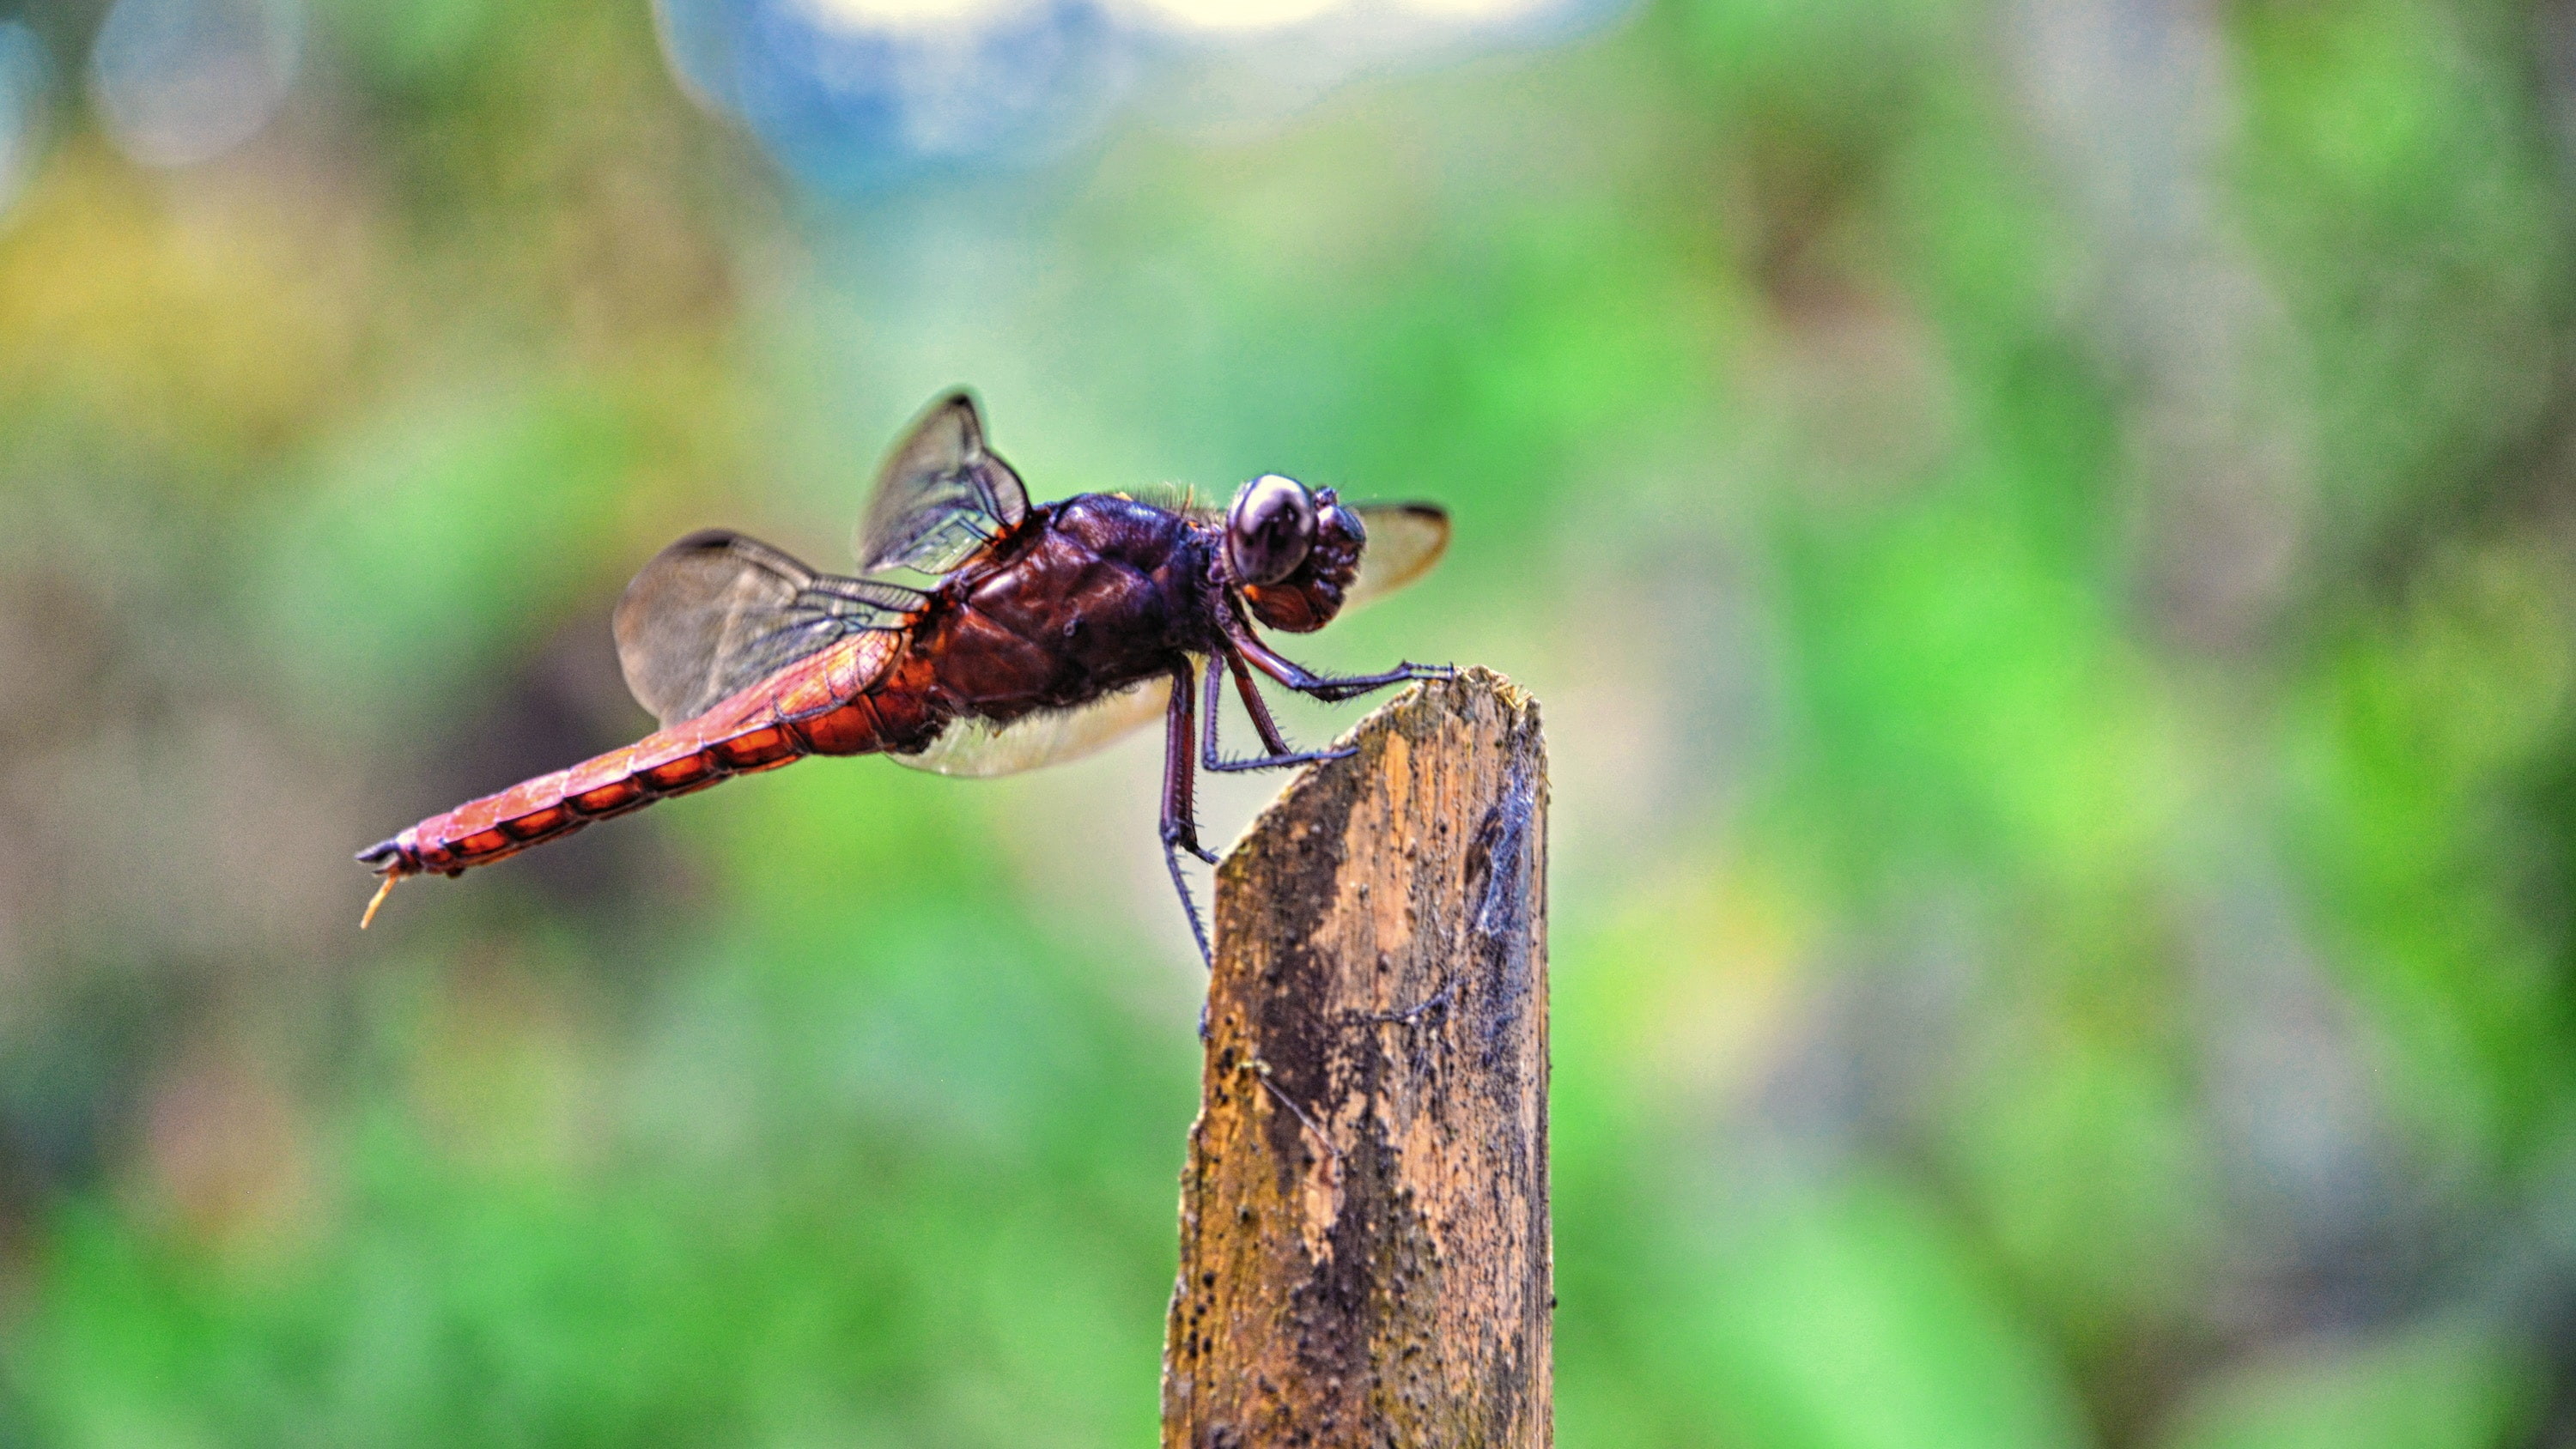 red and black dragonfly on brown tree trunk